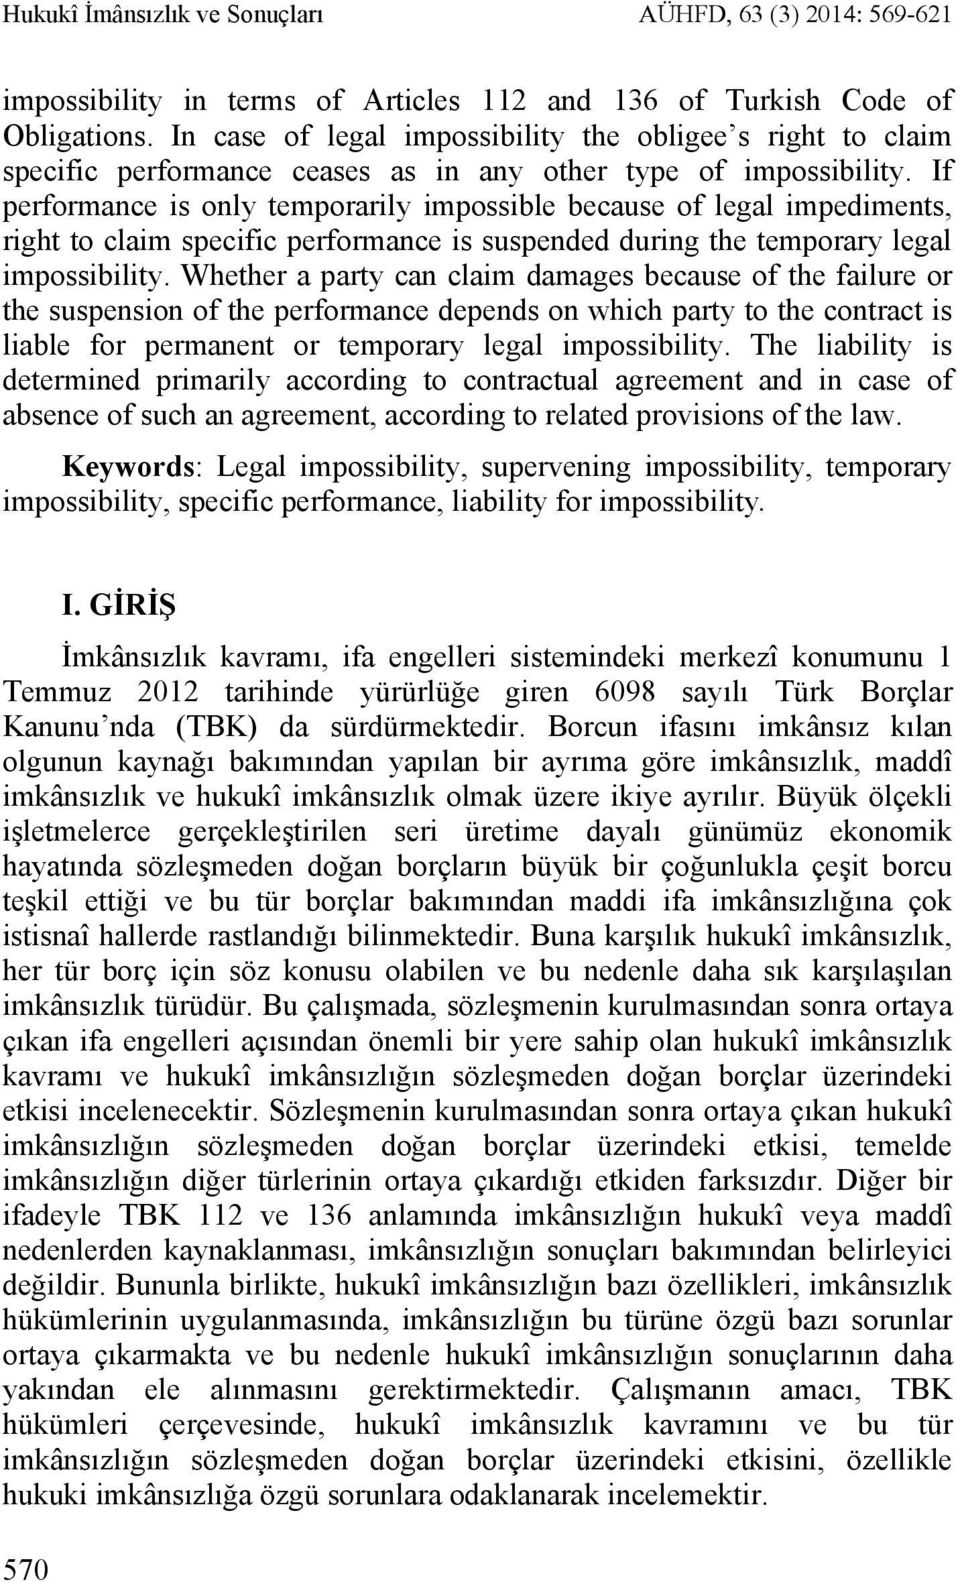 If performance is only temporarily impossible because of legal impediments, right to claim specific performance is suspended during the temporary legal impossibility.